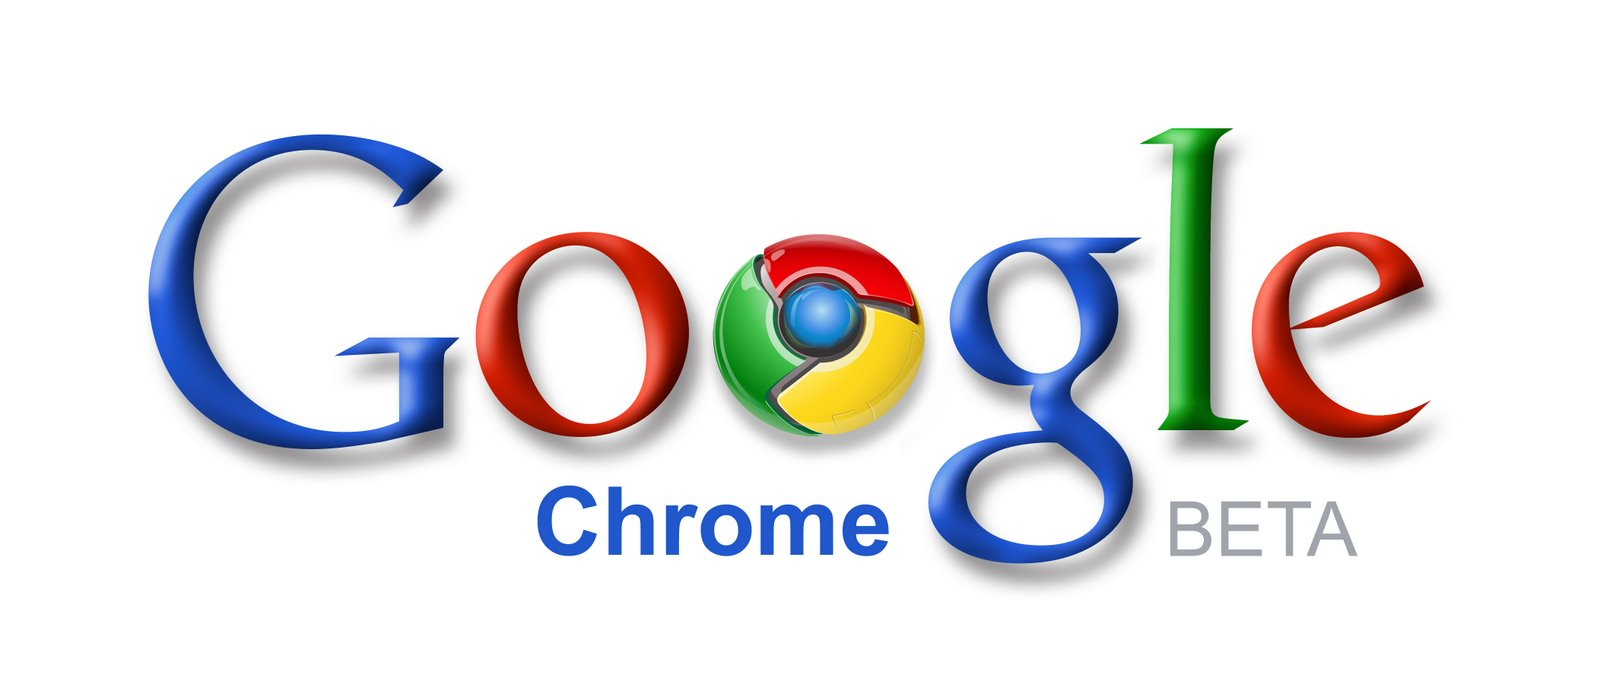 how to download youtube videos on gogole chrome